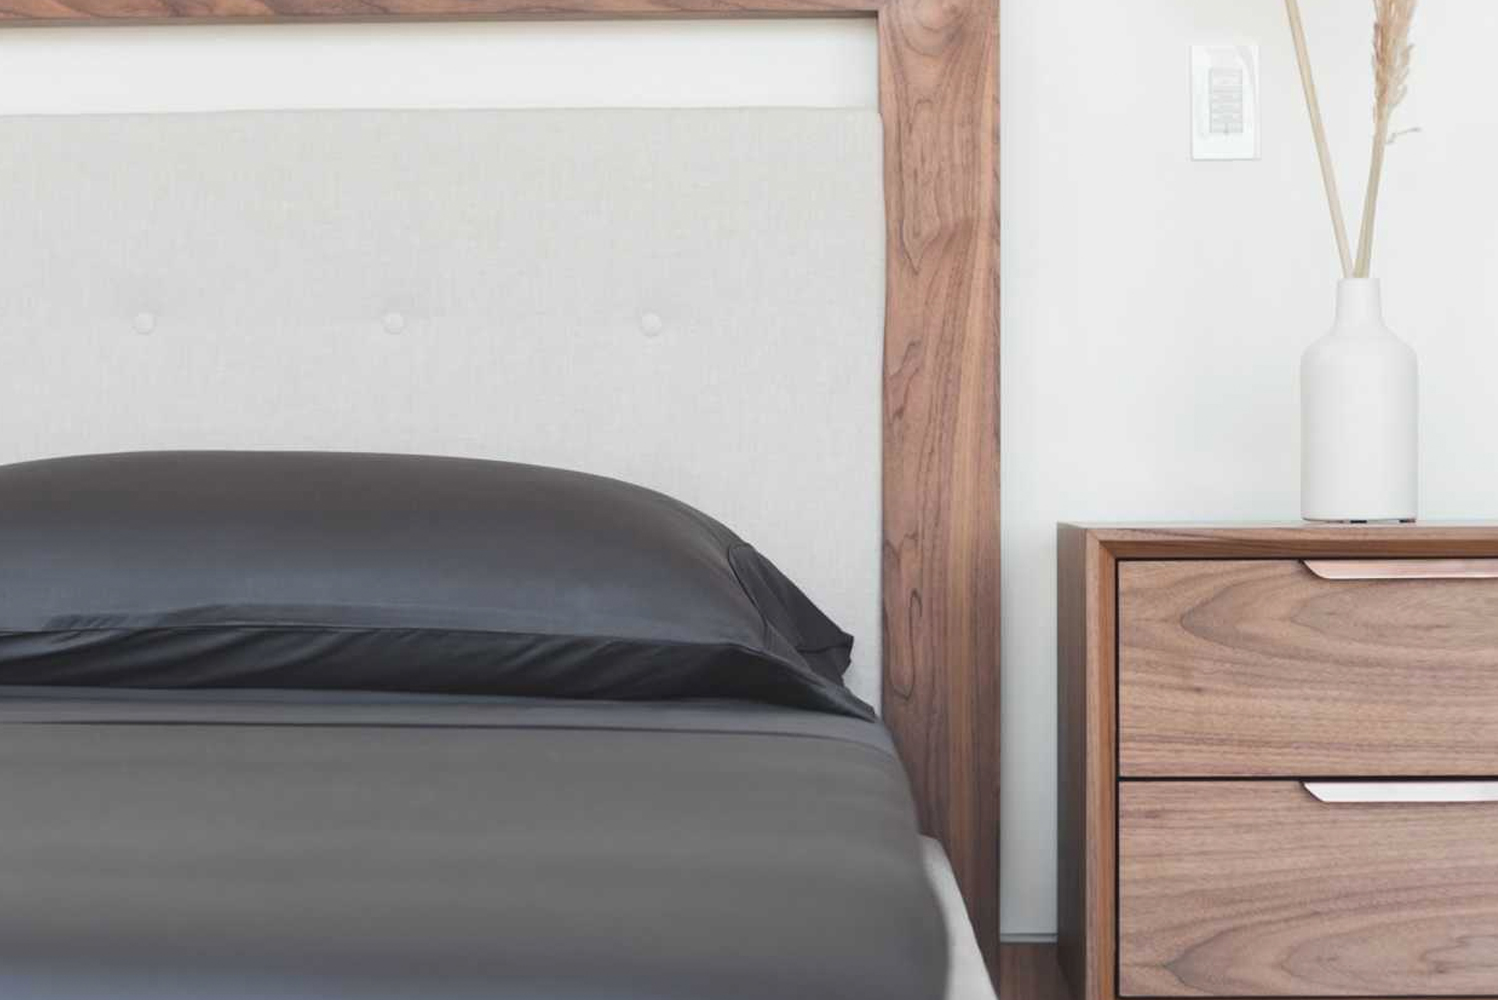 Rove Concepts announced its new luxury bedding, the Rora collection, which includes the mulberry charmeuse silk sheet set and the organic bamboo sheet set.